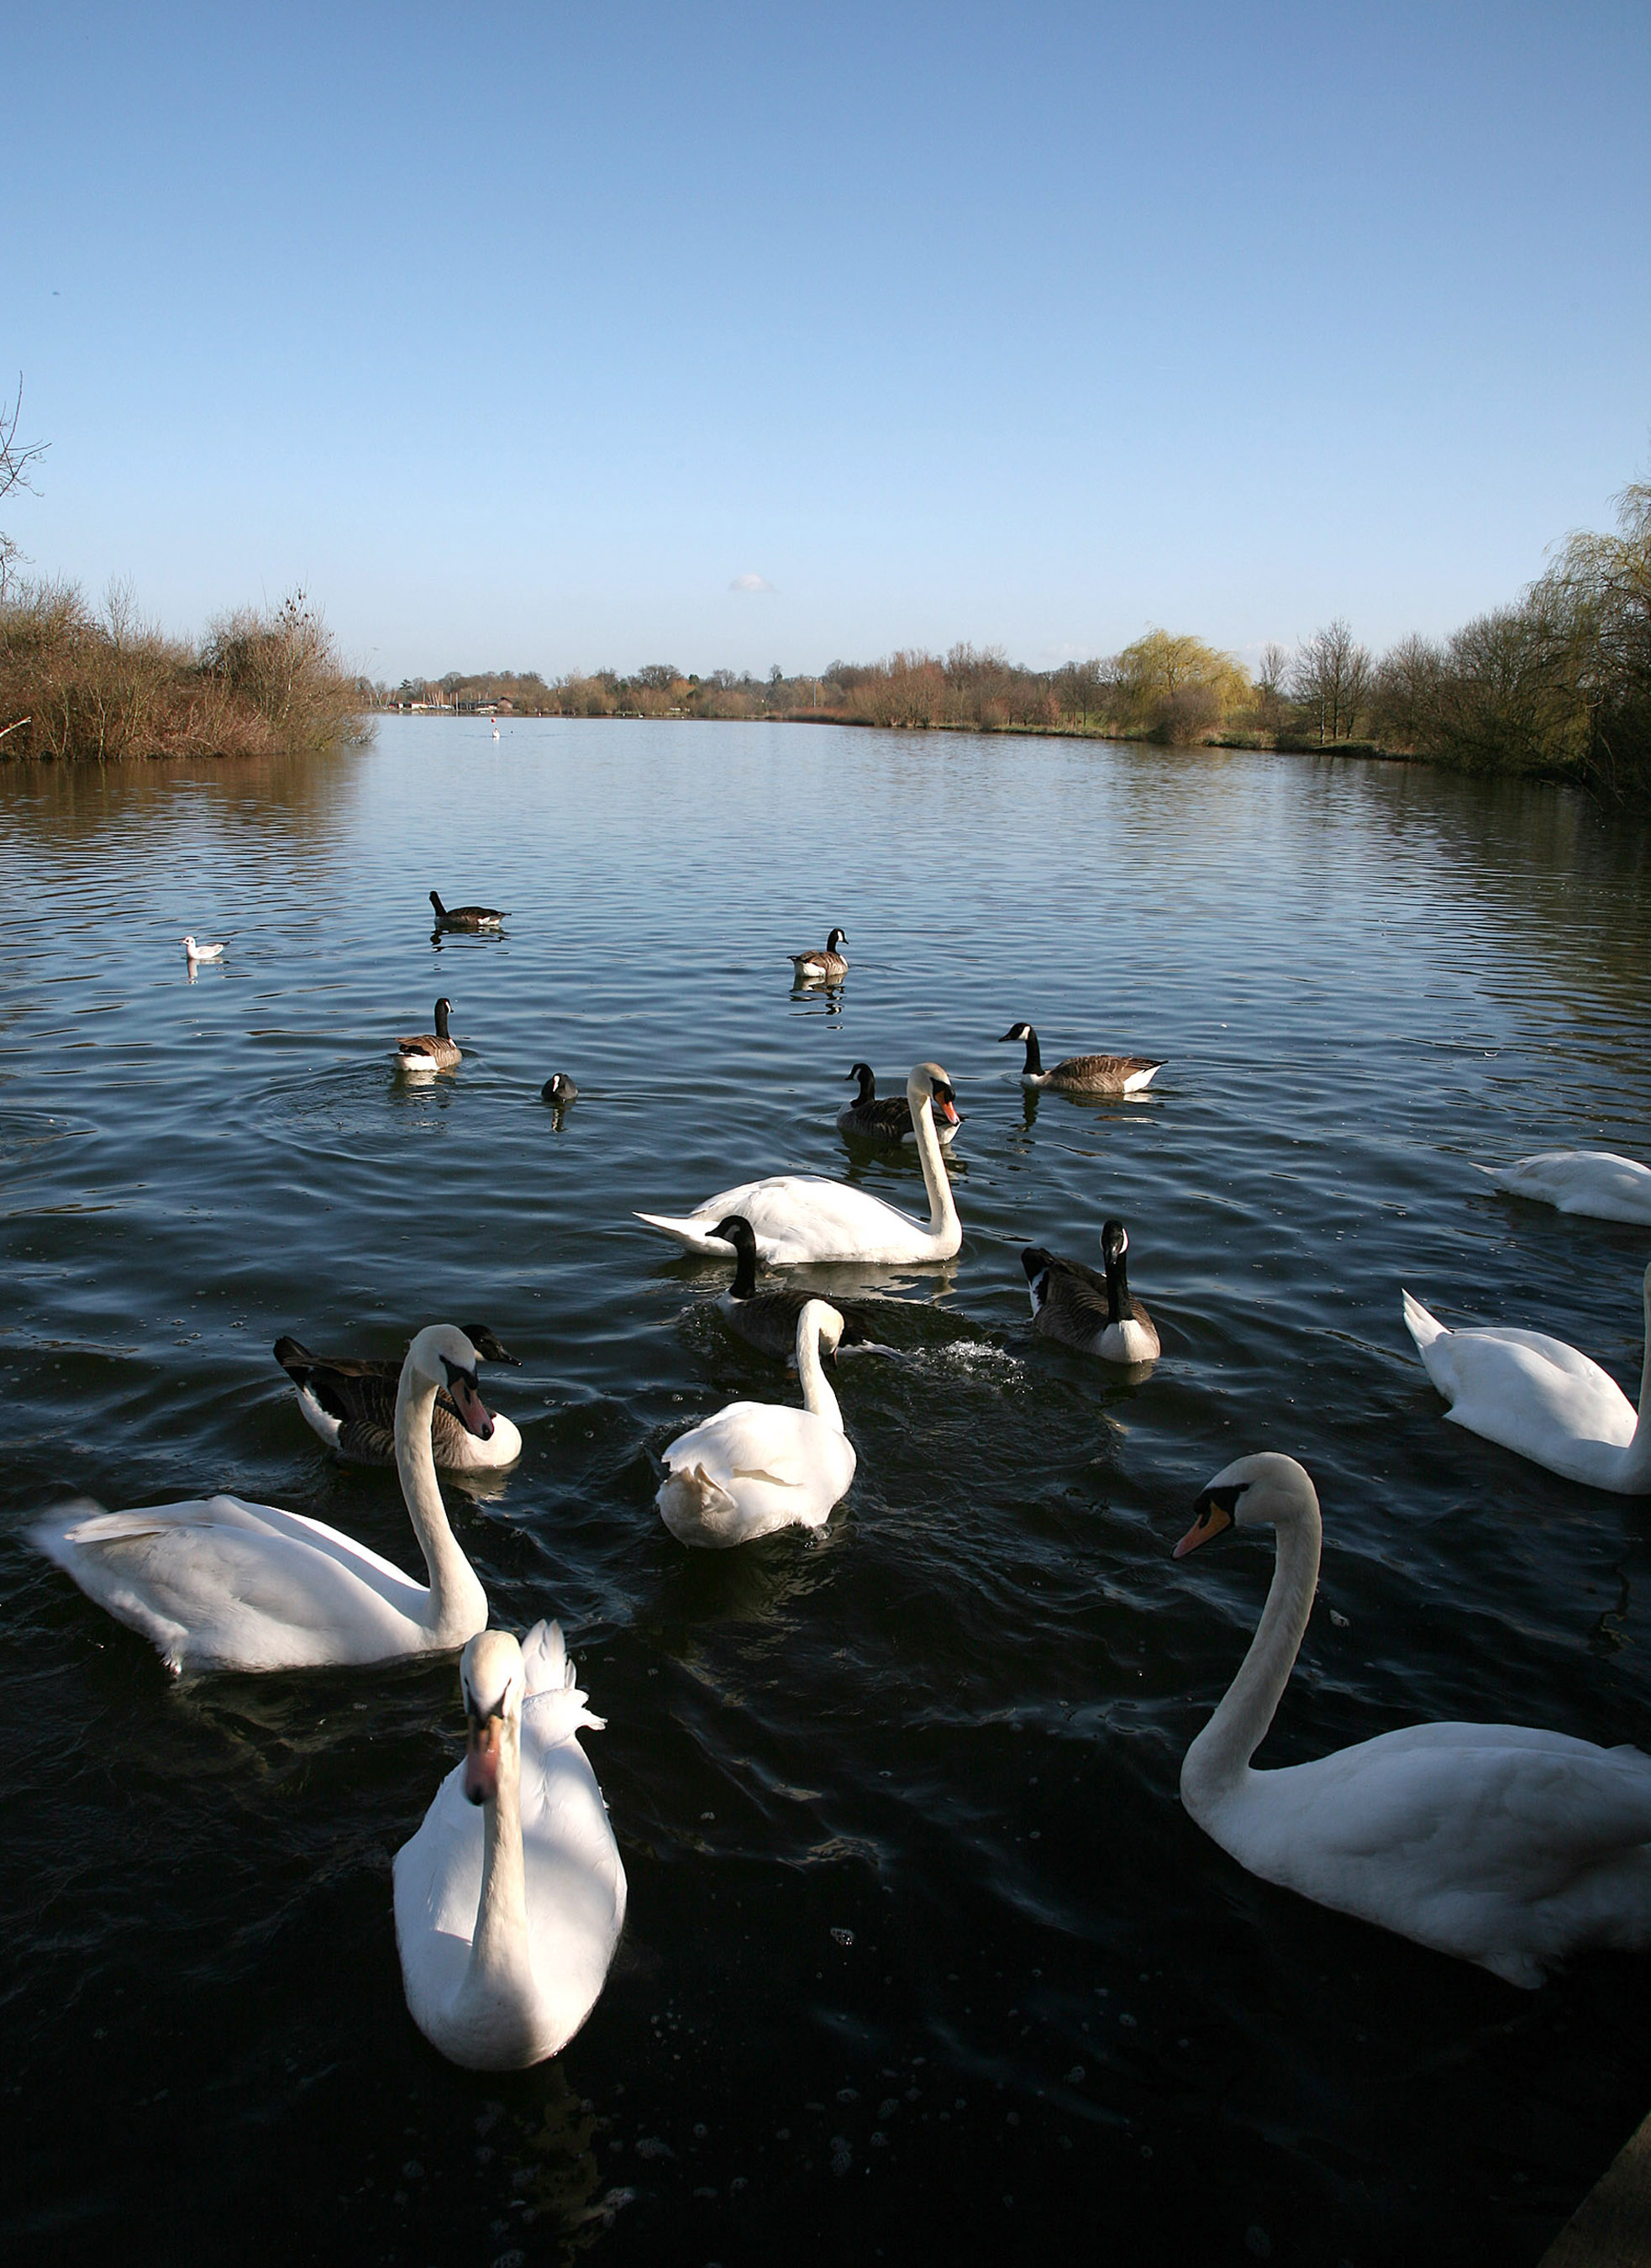 Dinton Pastures lake with swans on it